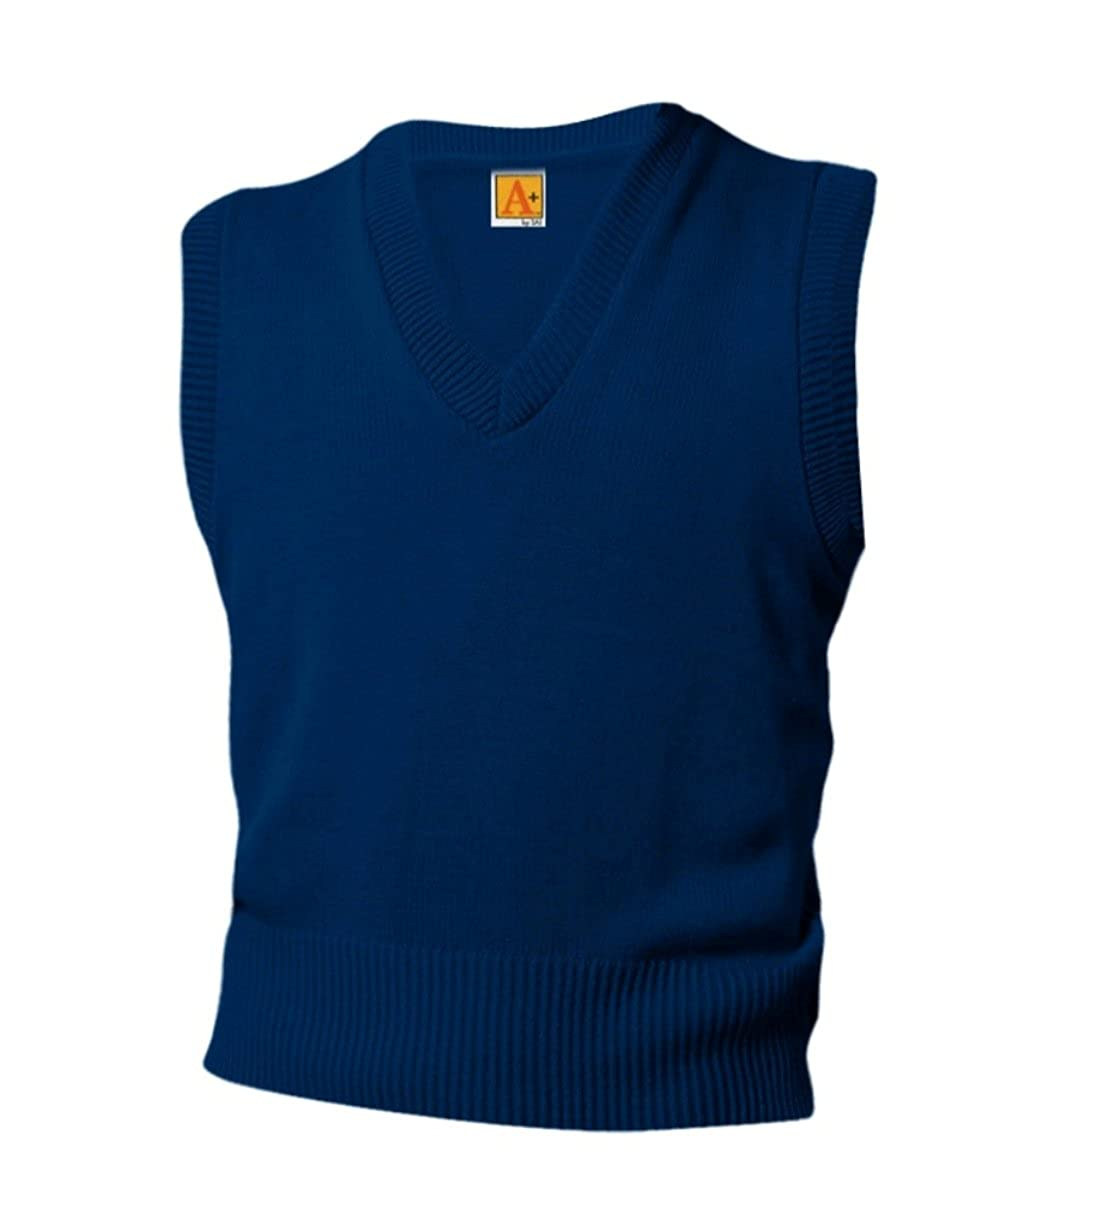 A+ Youth & Adult School Uniform V-Neck Sweater Vest 6600Y